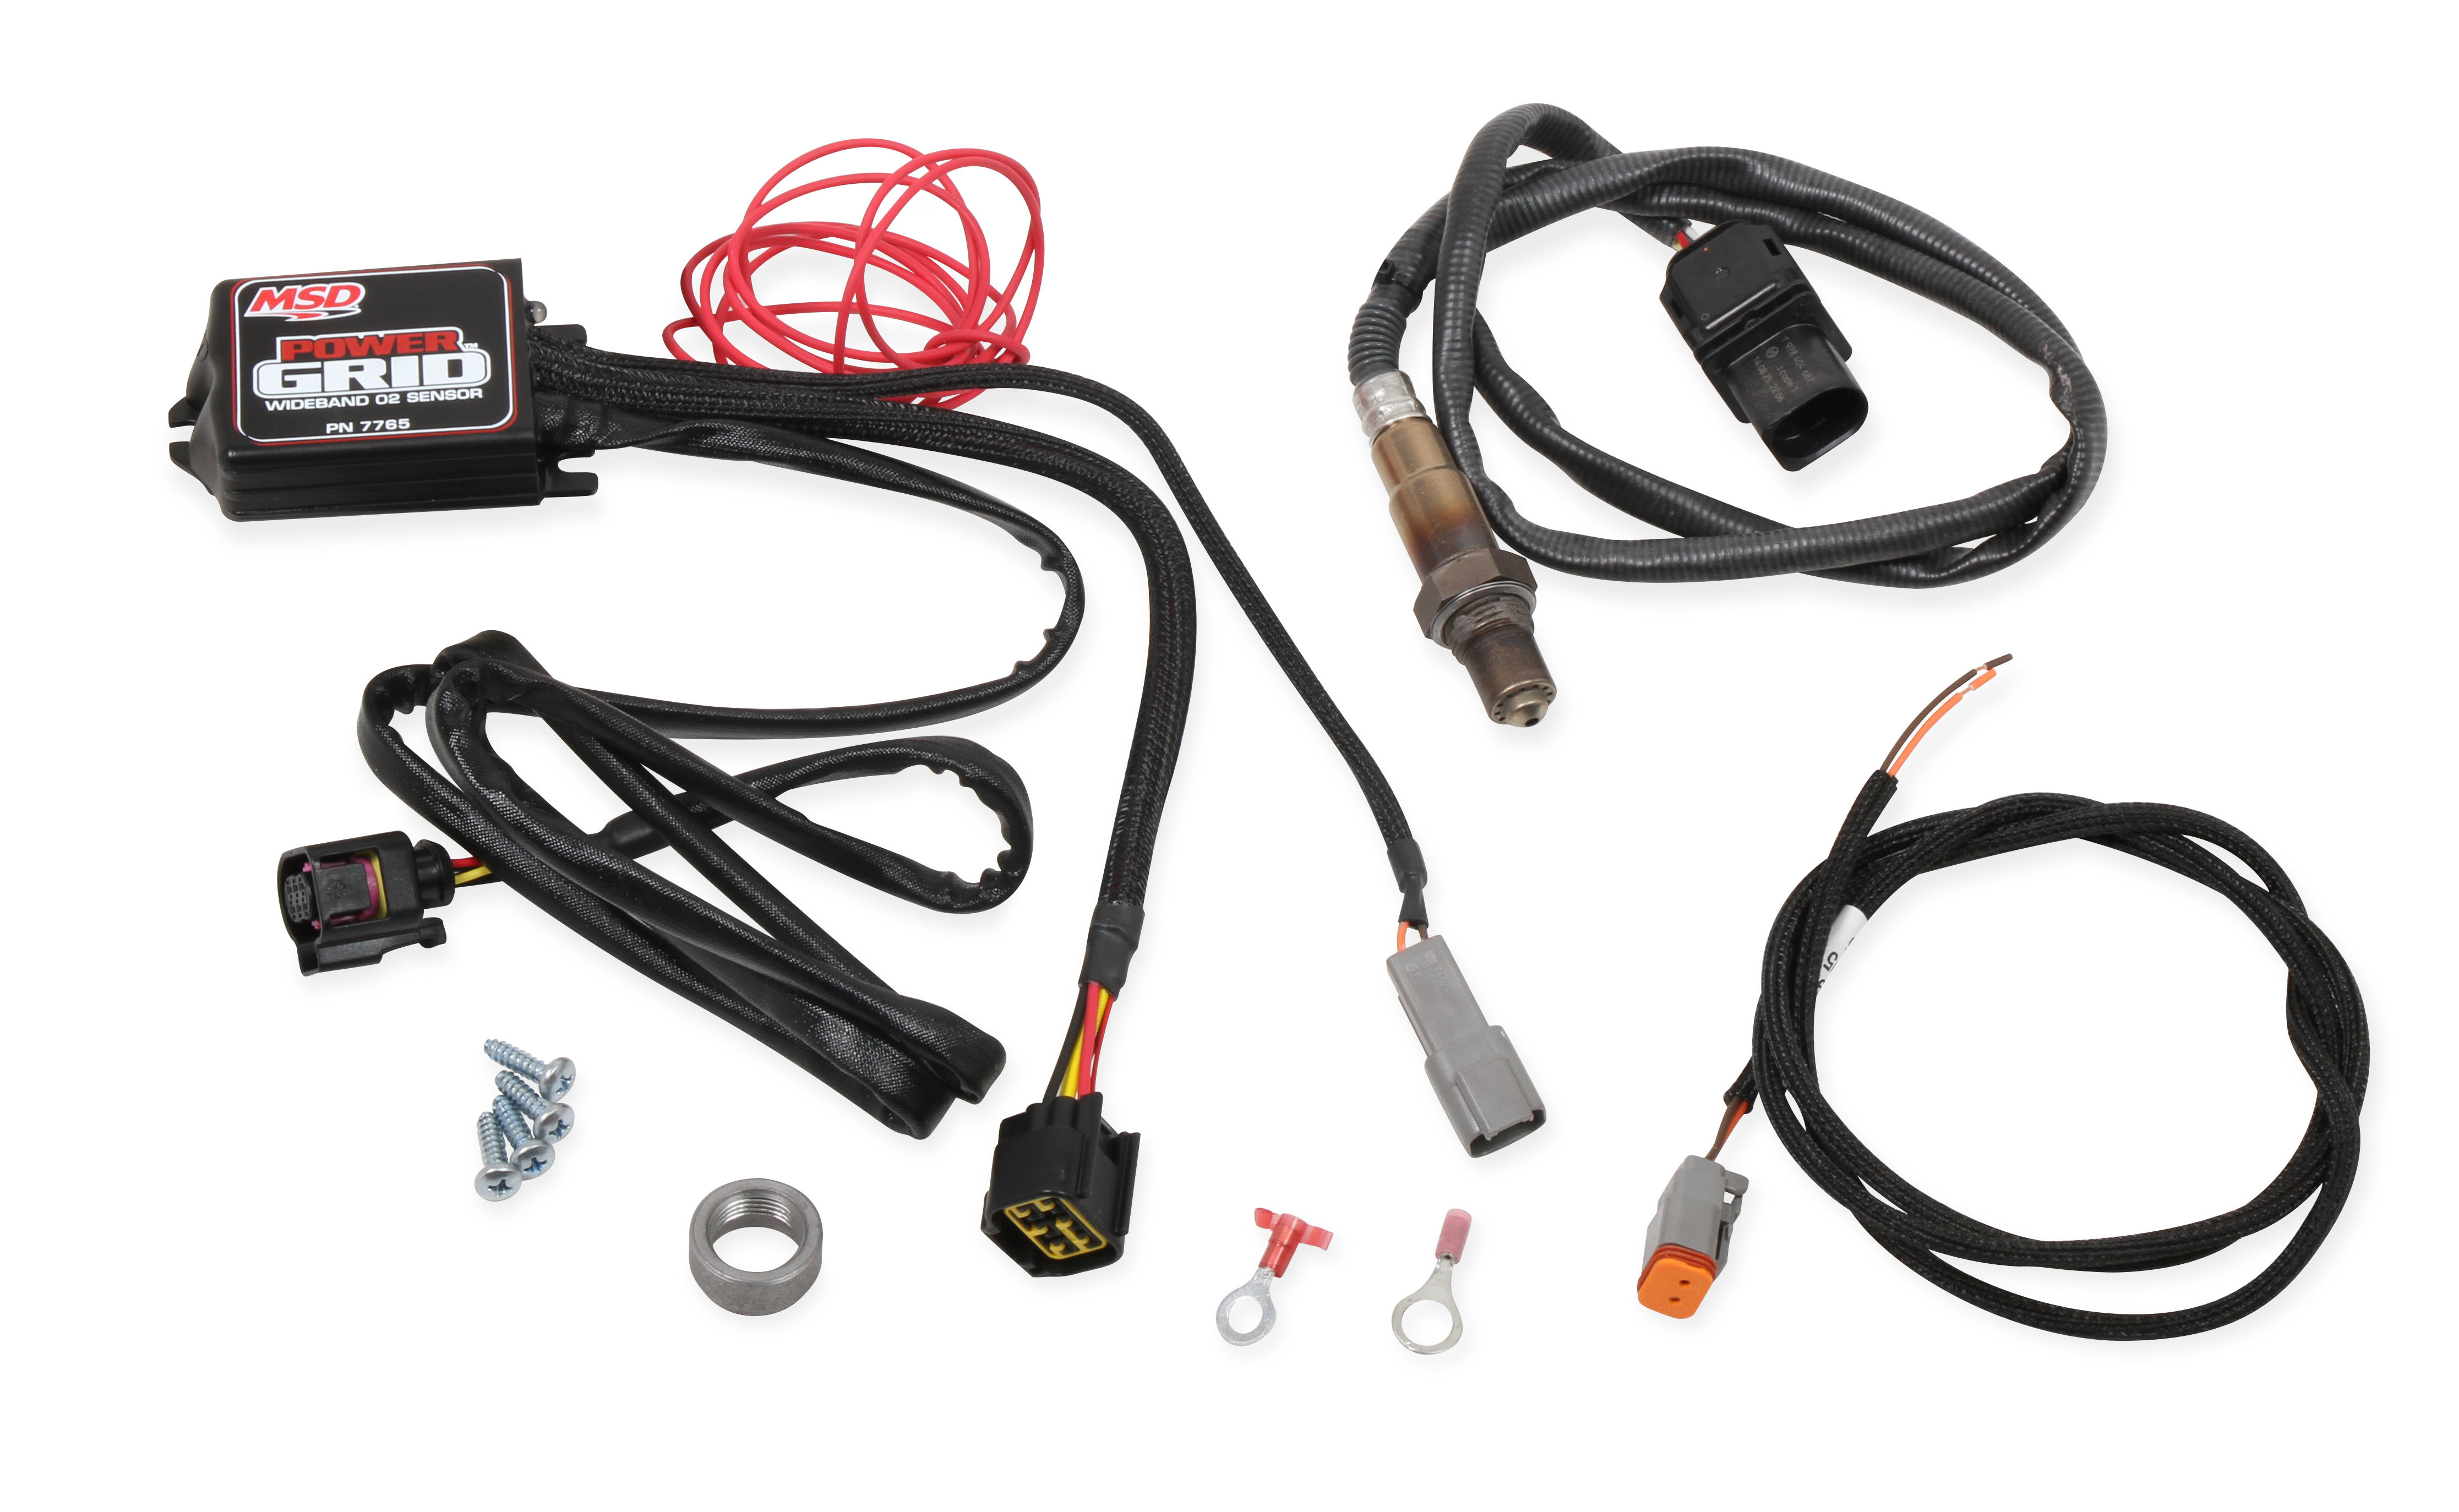 MSD Ignition 7765 Ignition Control Module, Power Grid Module, Wideband O2 Module, Programmable, MSD Distributors, Each